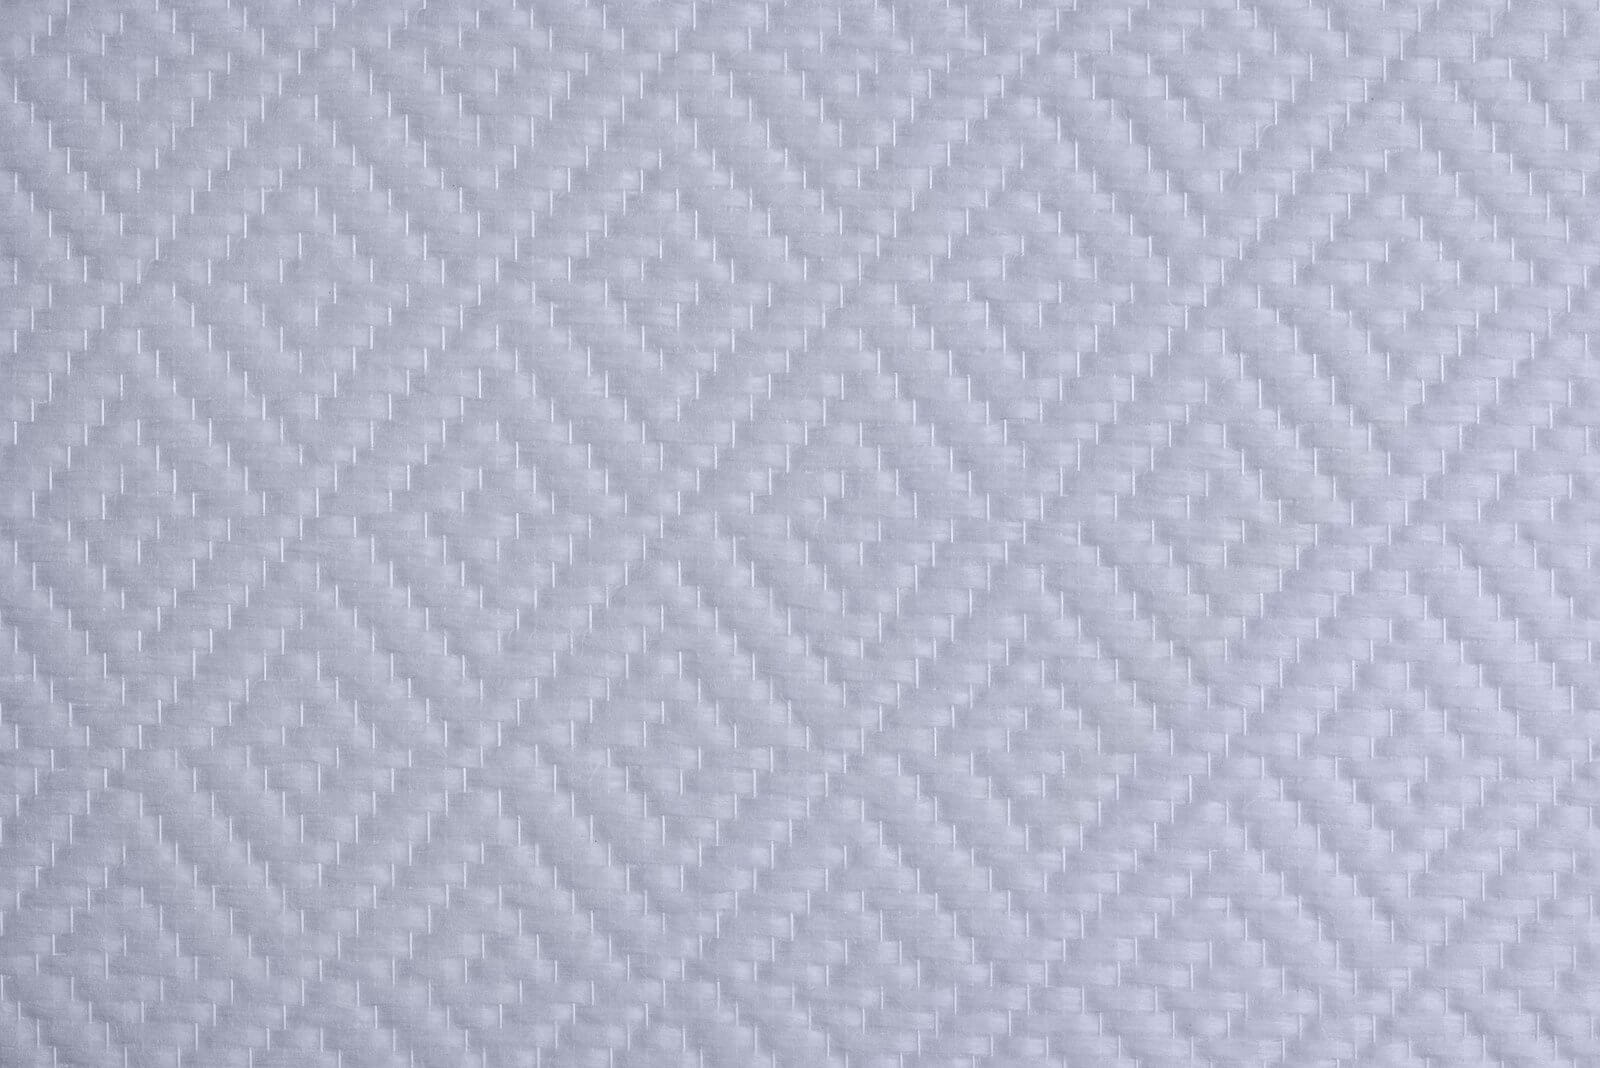 lozenge figure pattern of the fiberglass wallpaper